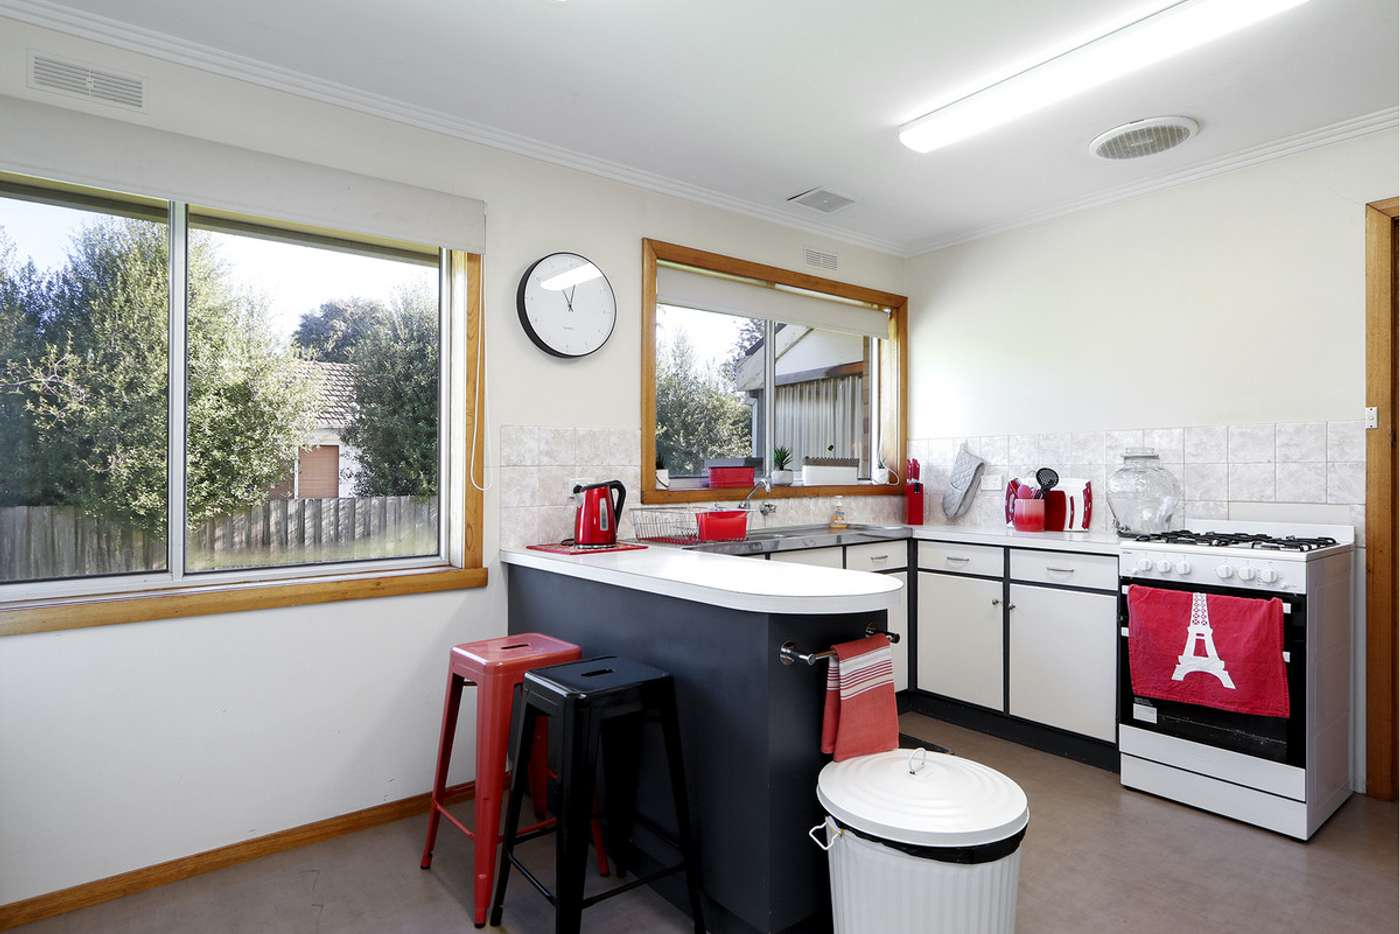 Fifth view of Homely house listing, 371 York Street, Sale VIC 3850